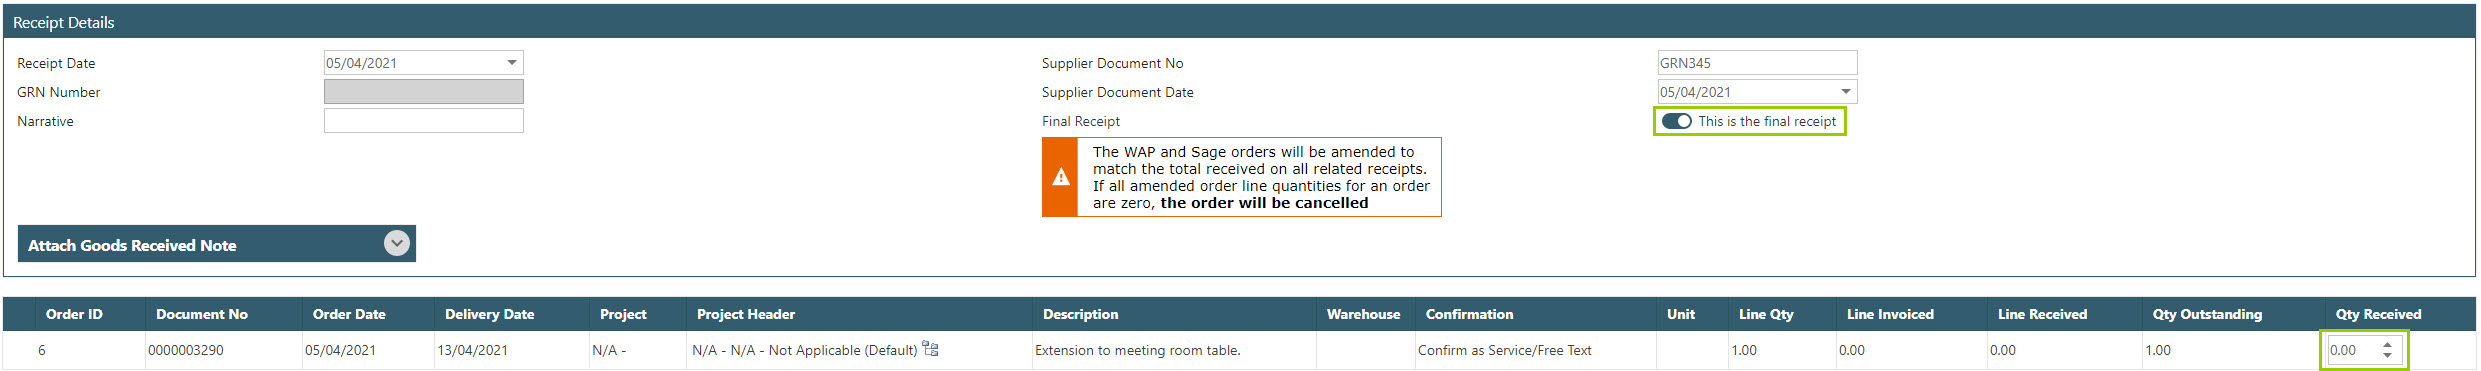 Sicon WAP Purchase Requisitions Help and User Guide - Requisition HUG Section 10.5 Image 1